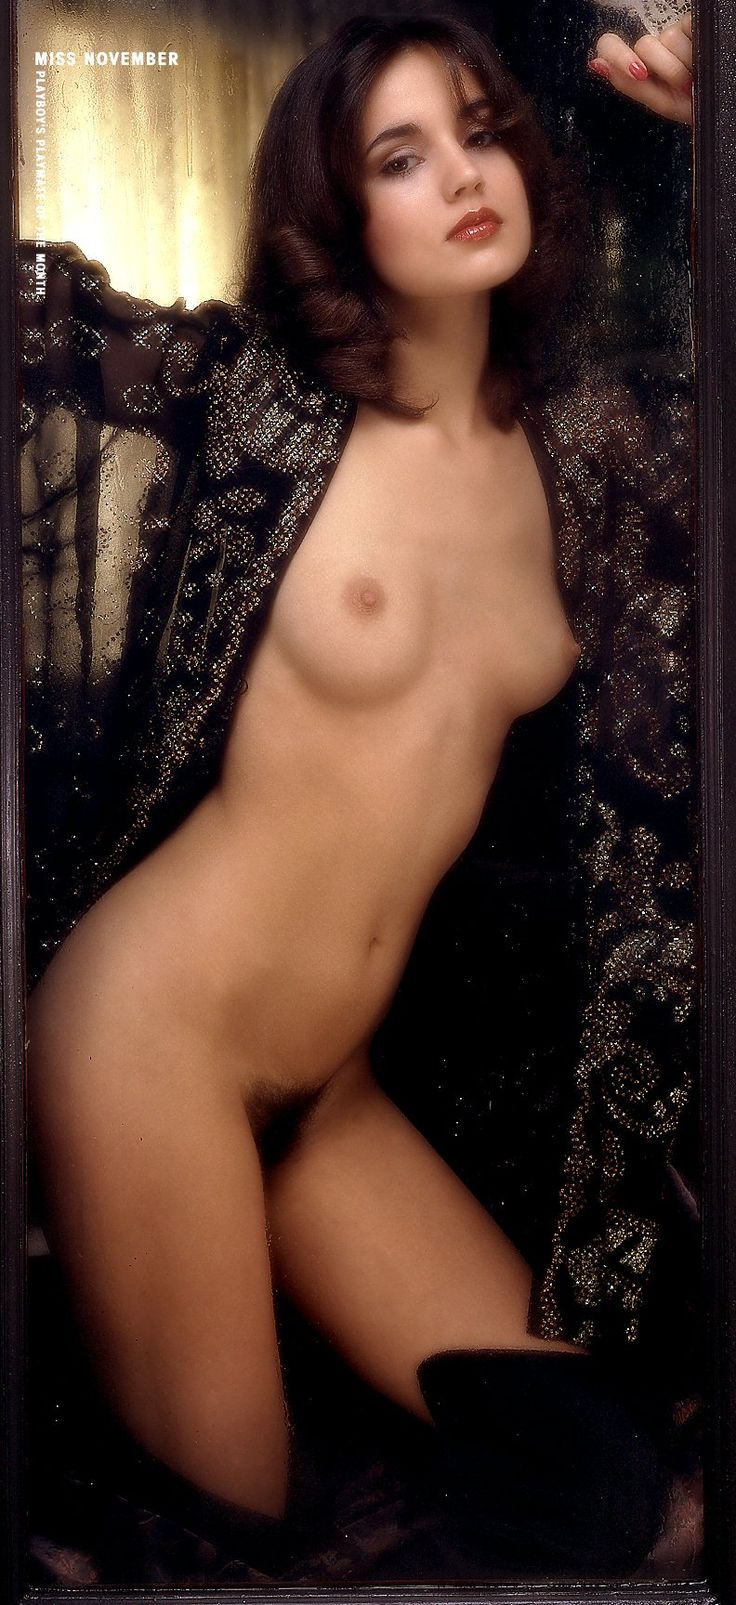 classic 1970s nude playboy pics